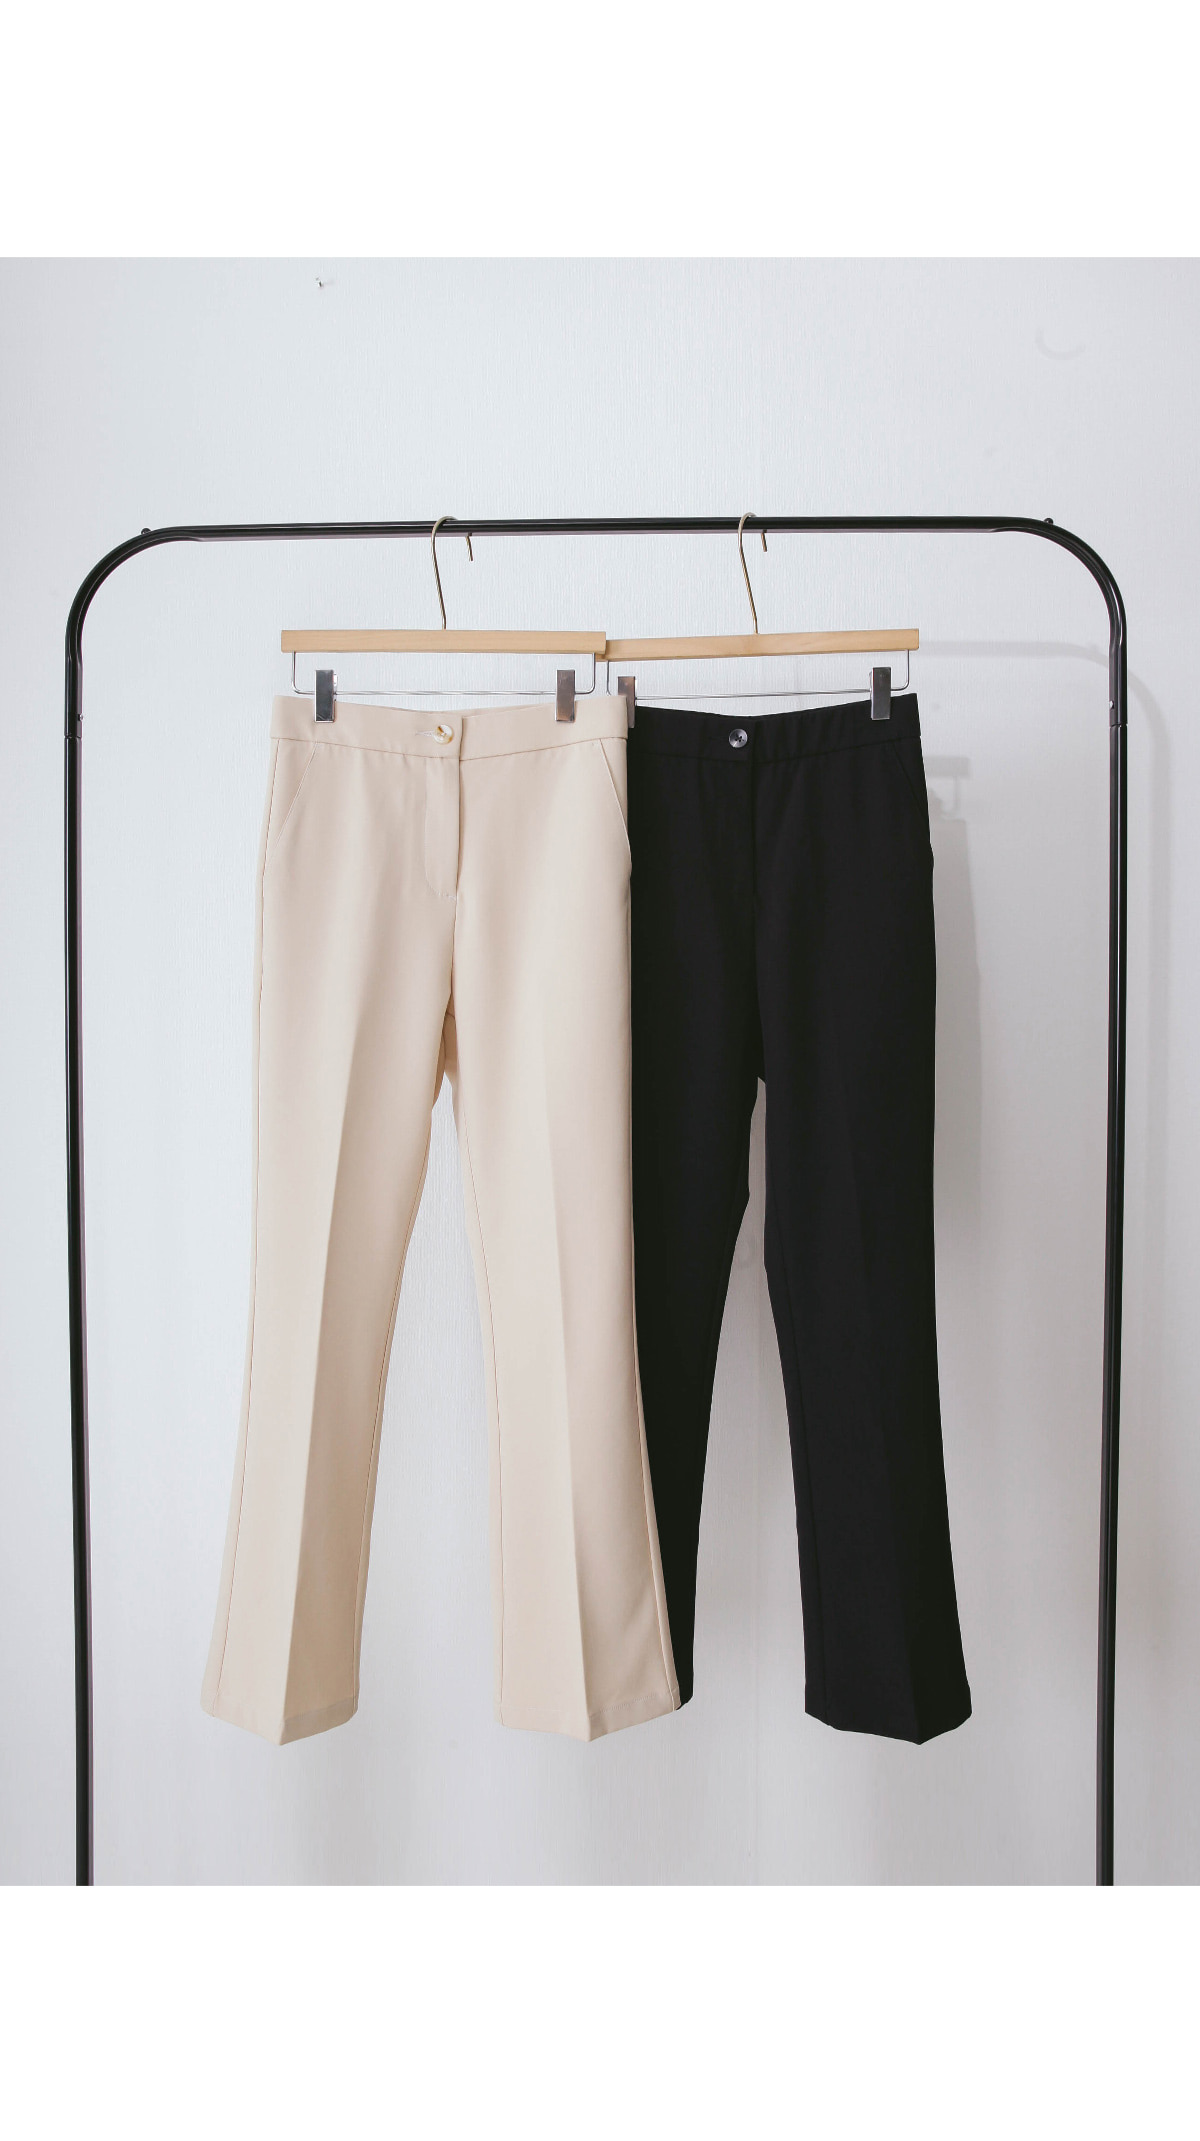 Straight cut Eden slacks pants